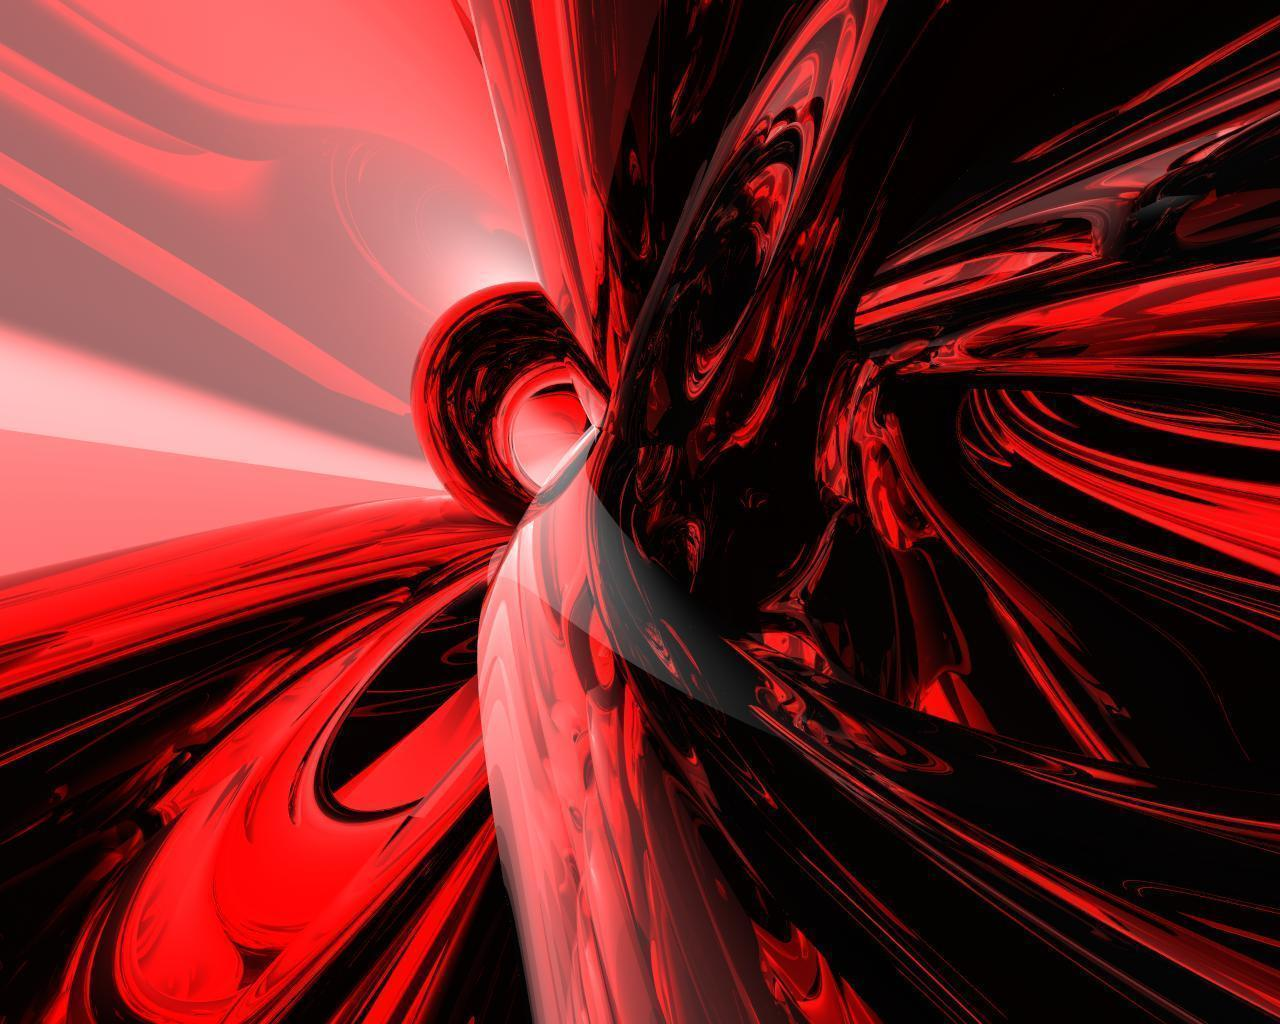 Black and red abstract wallpapers wallpaper cave for Black red wallpaper